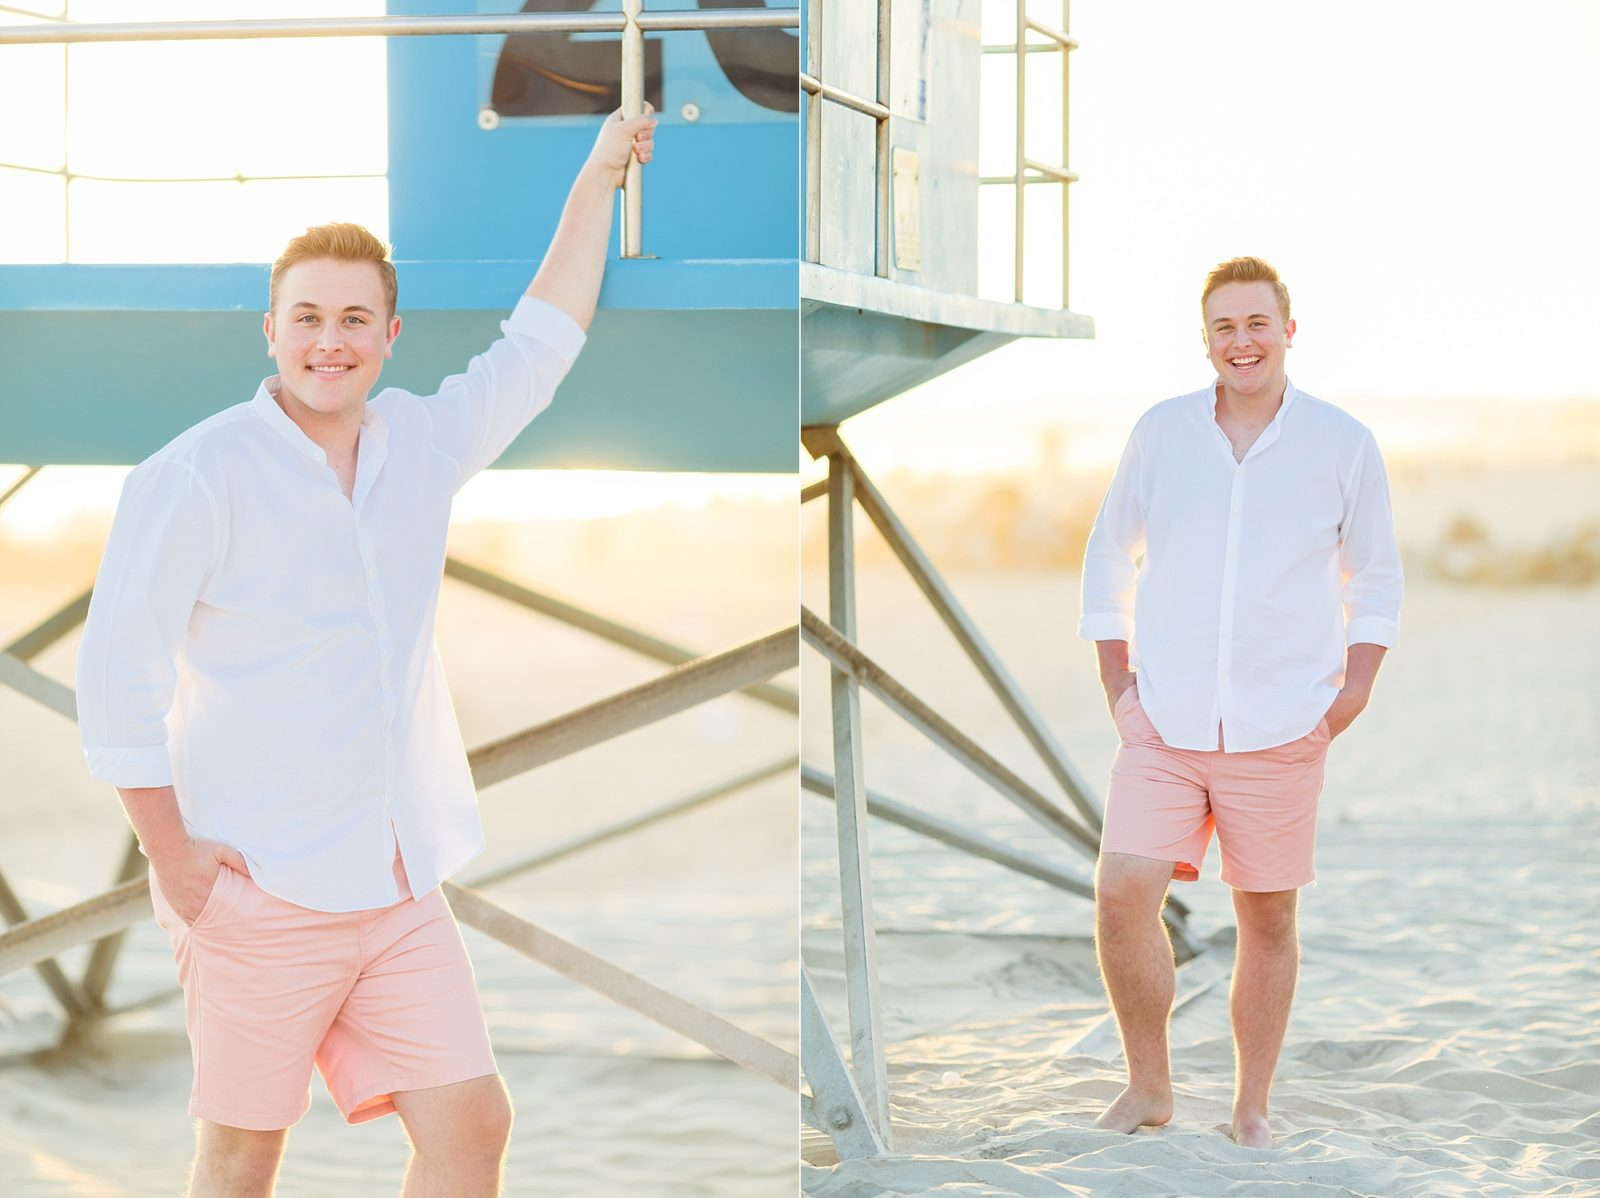 Senior Pictures San Diego | High School Senior Photos